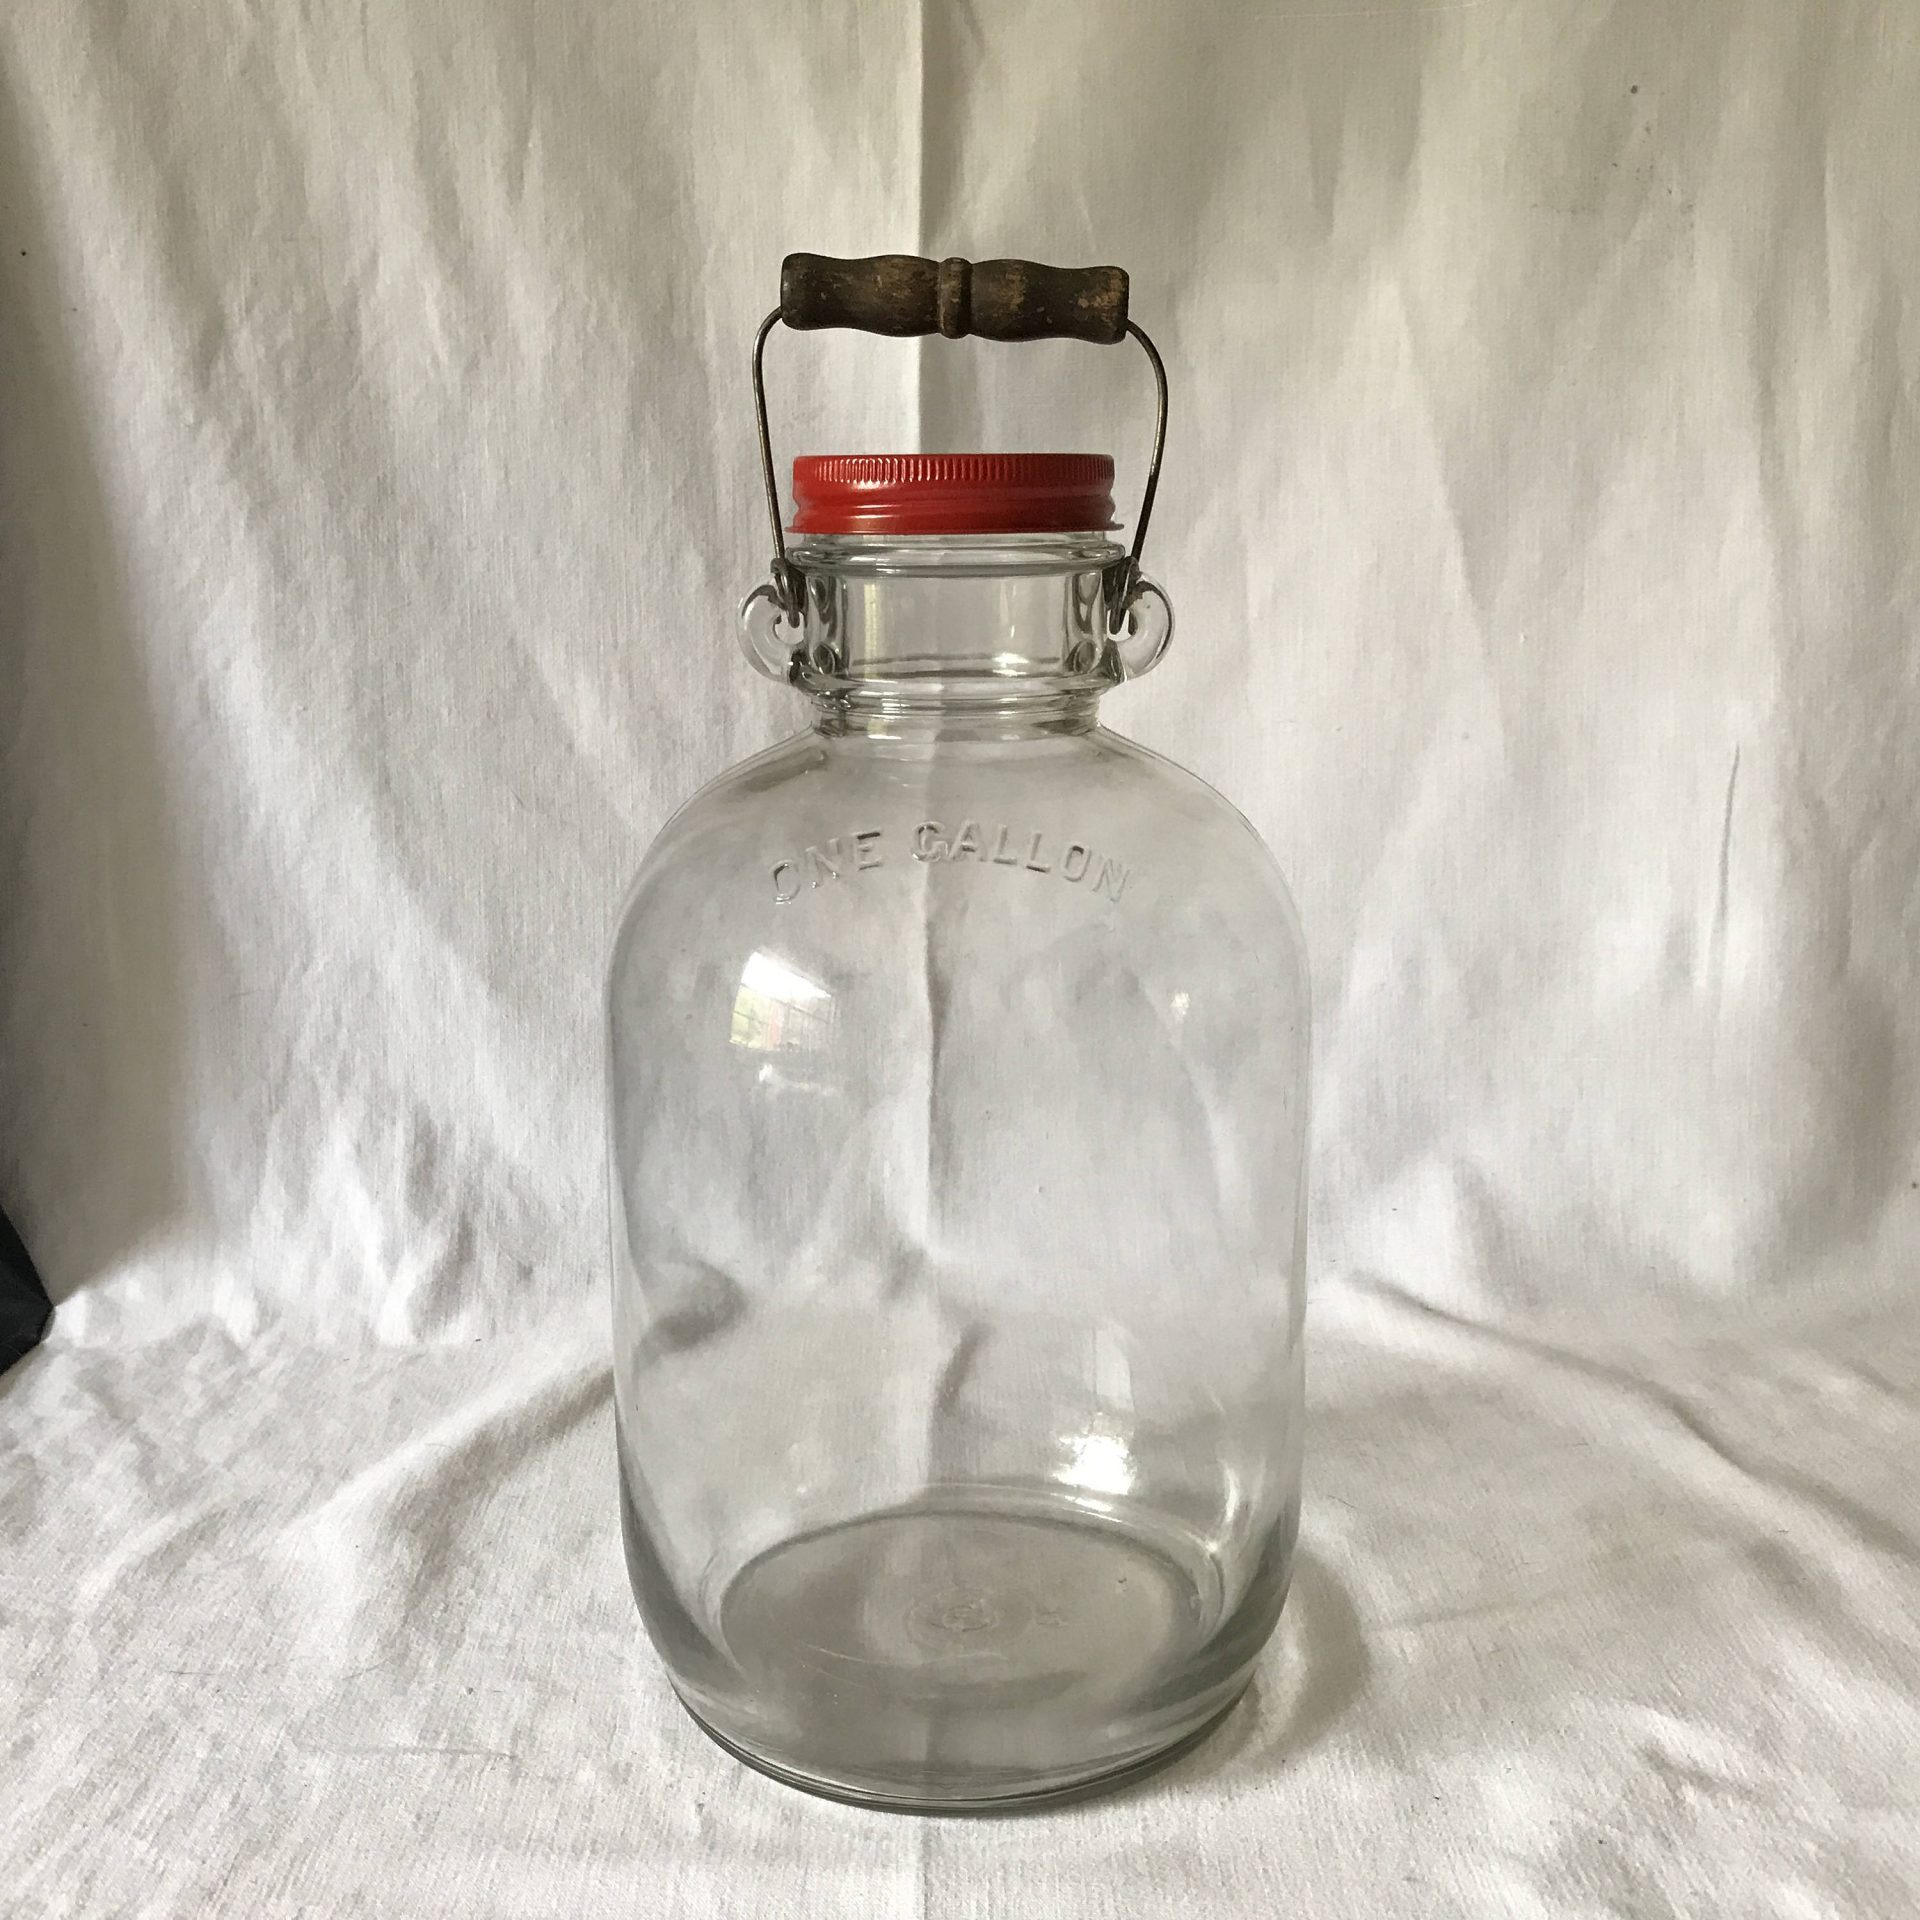 Fantastic Owens Illinois Antique Jug Jar with Bail Wire handle 1 gallon with Metal lid farmhouse kitchen collectible display buttons marbles